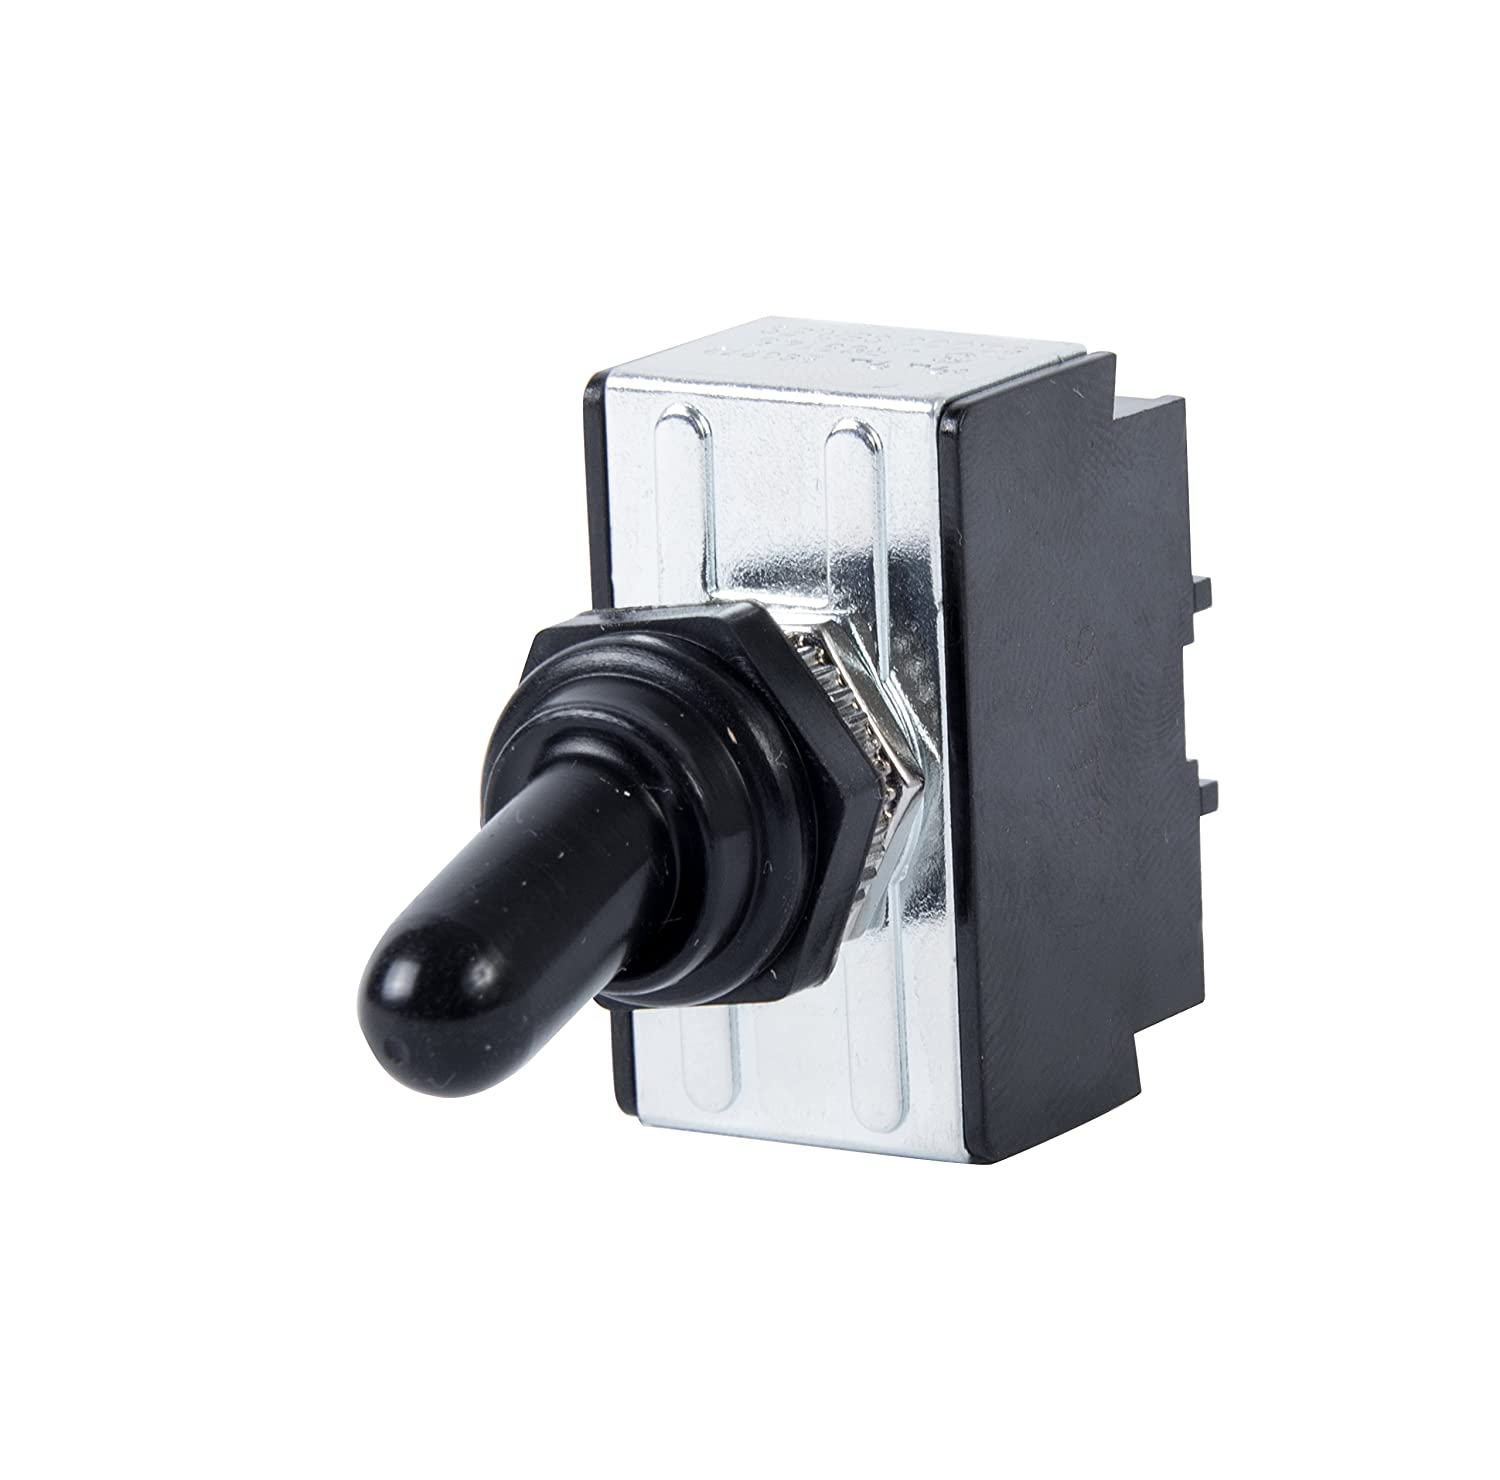 Gardner Bender Gsw 10 Electrical Toggle Switch Spst On Switches 20 Amp Screw Terminal Onoff Off A 125v Ac Home Improvement